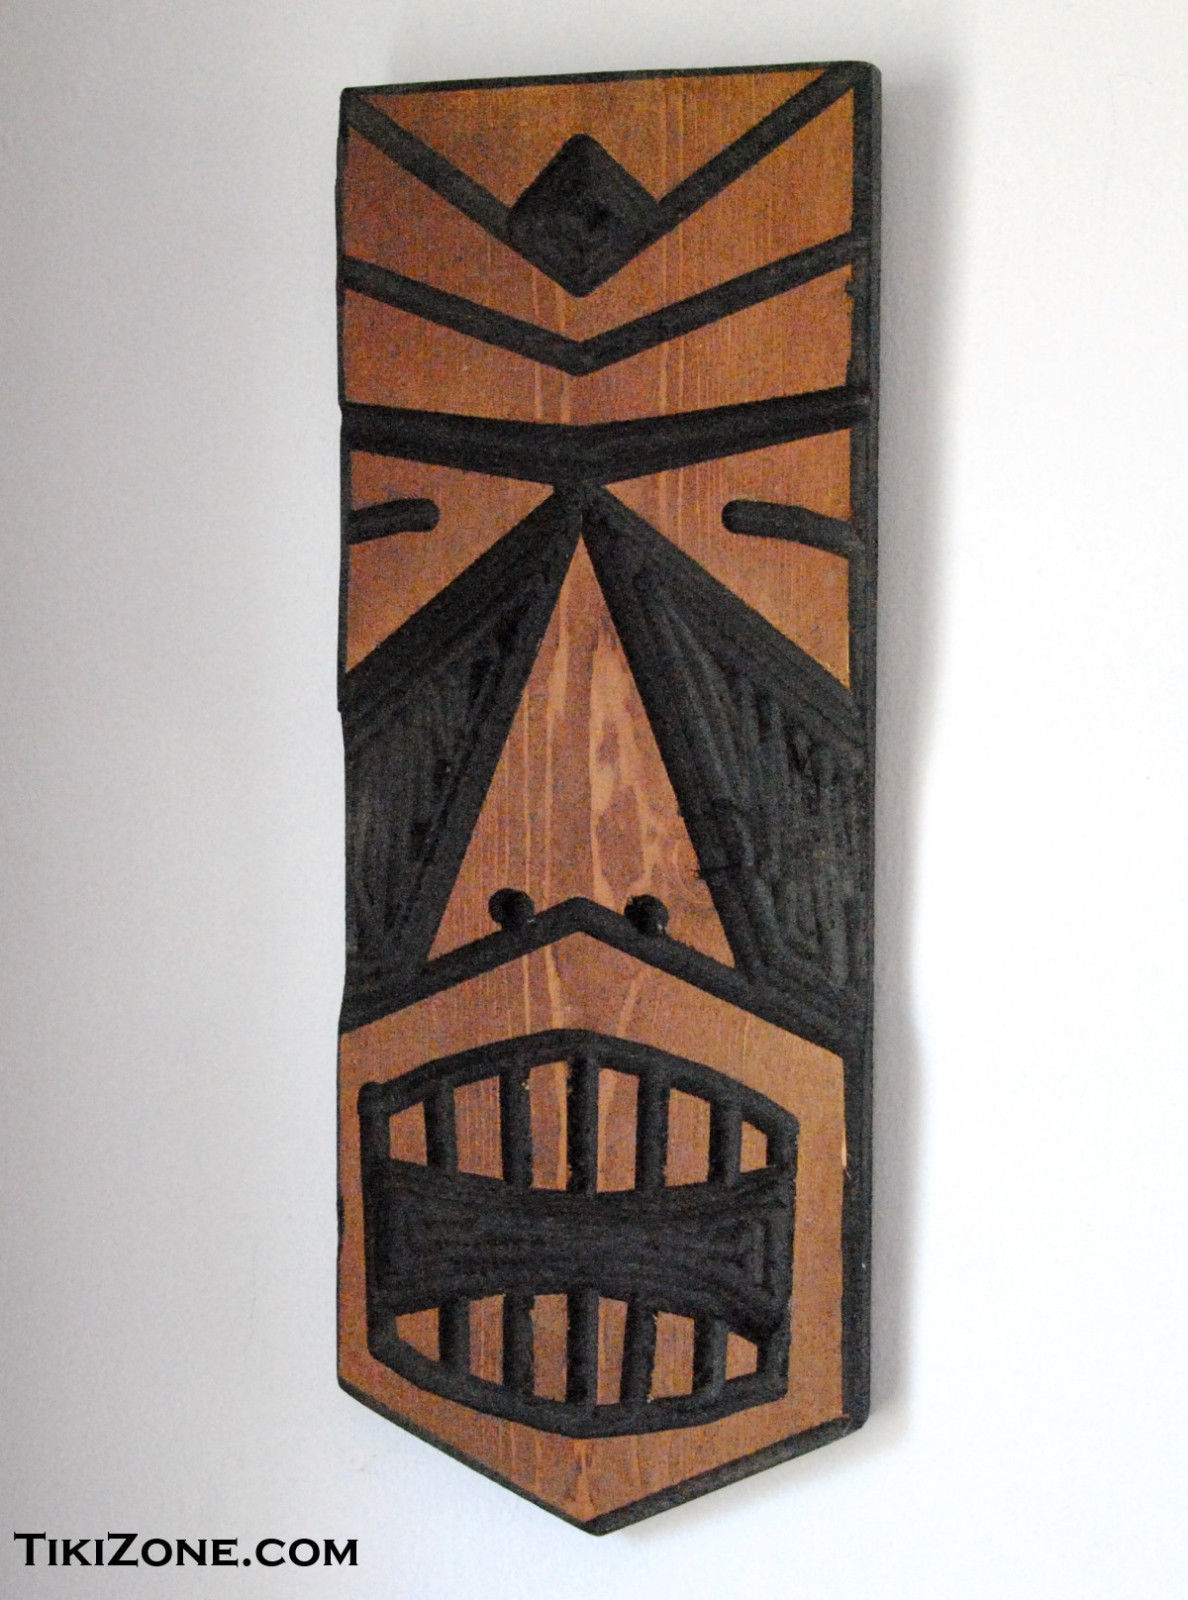 Carved Wood Tiki Head Mask - Hawaiian Tropical Lounge Decor -  Outsider Art